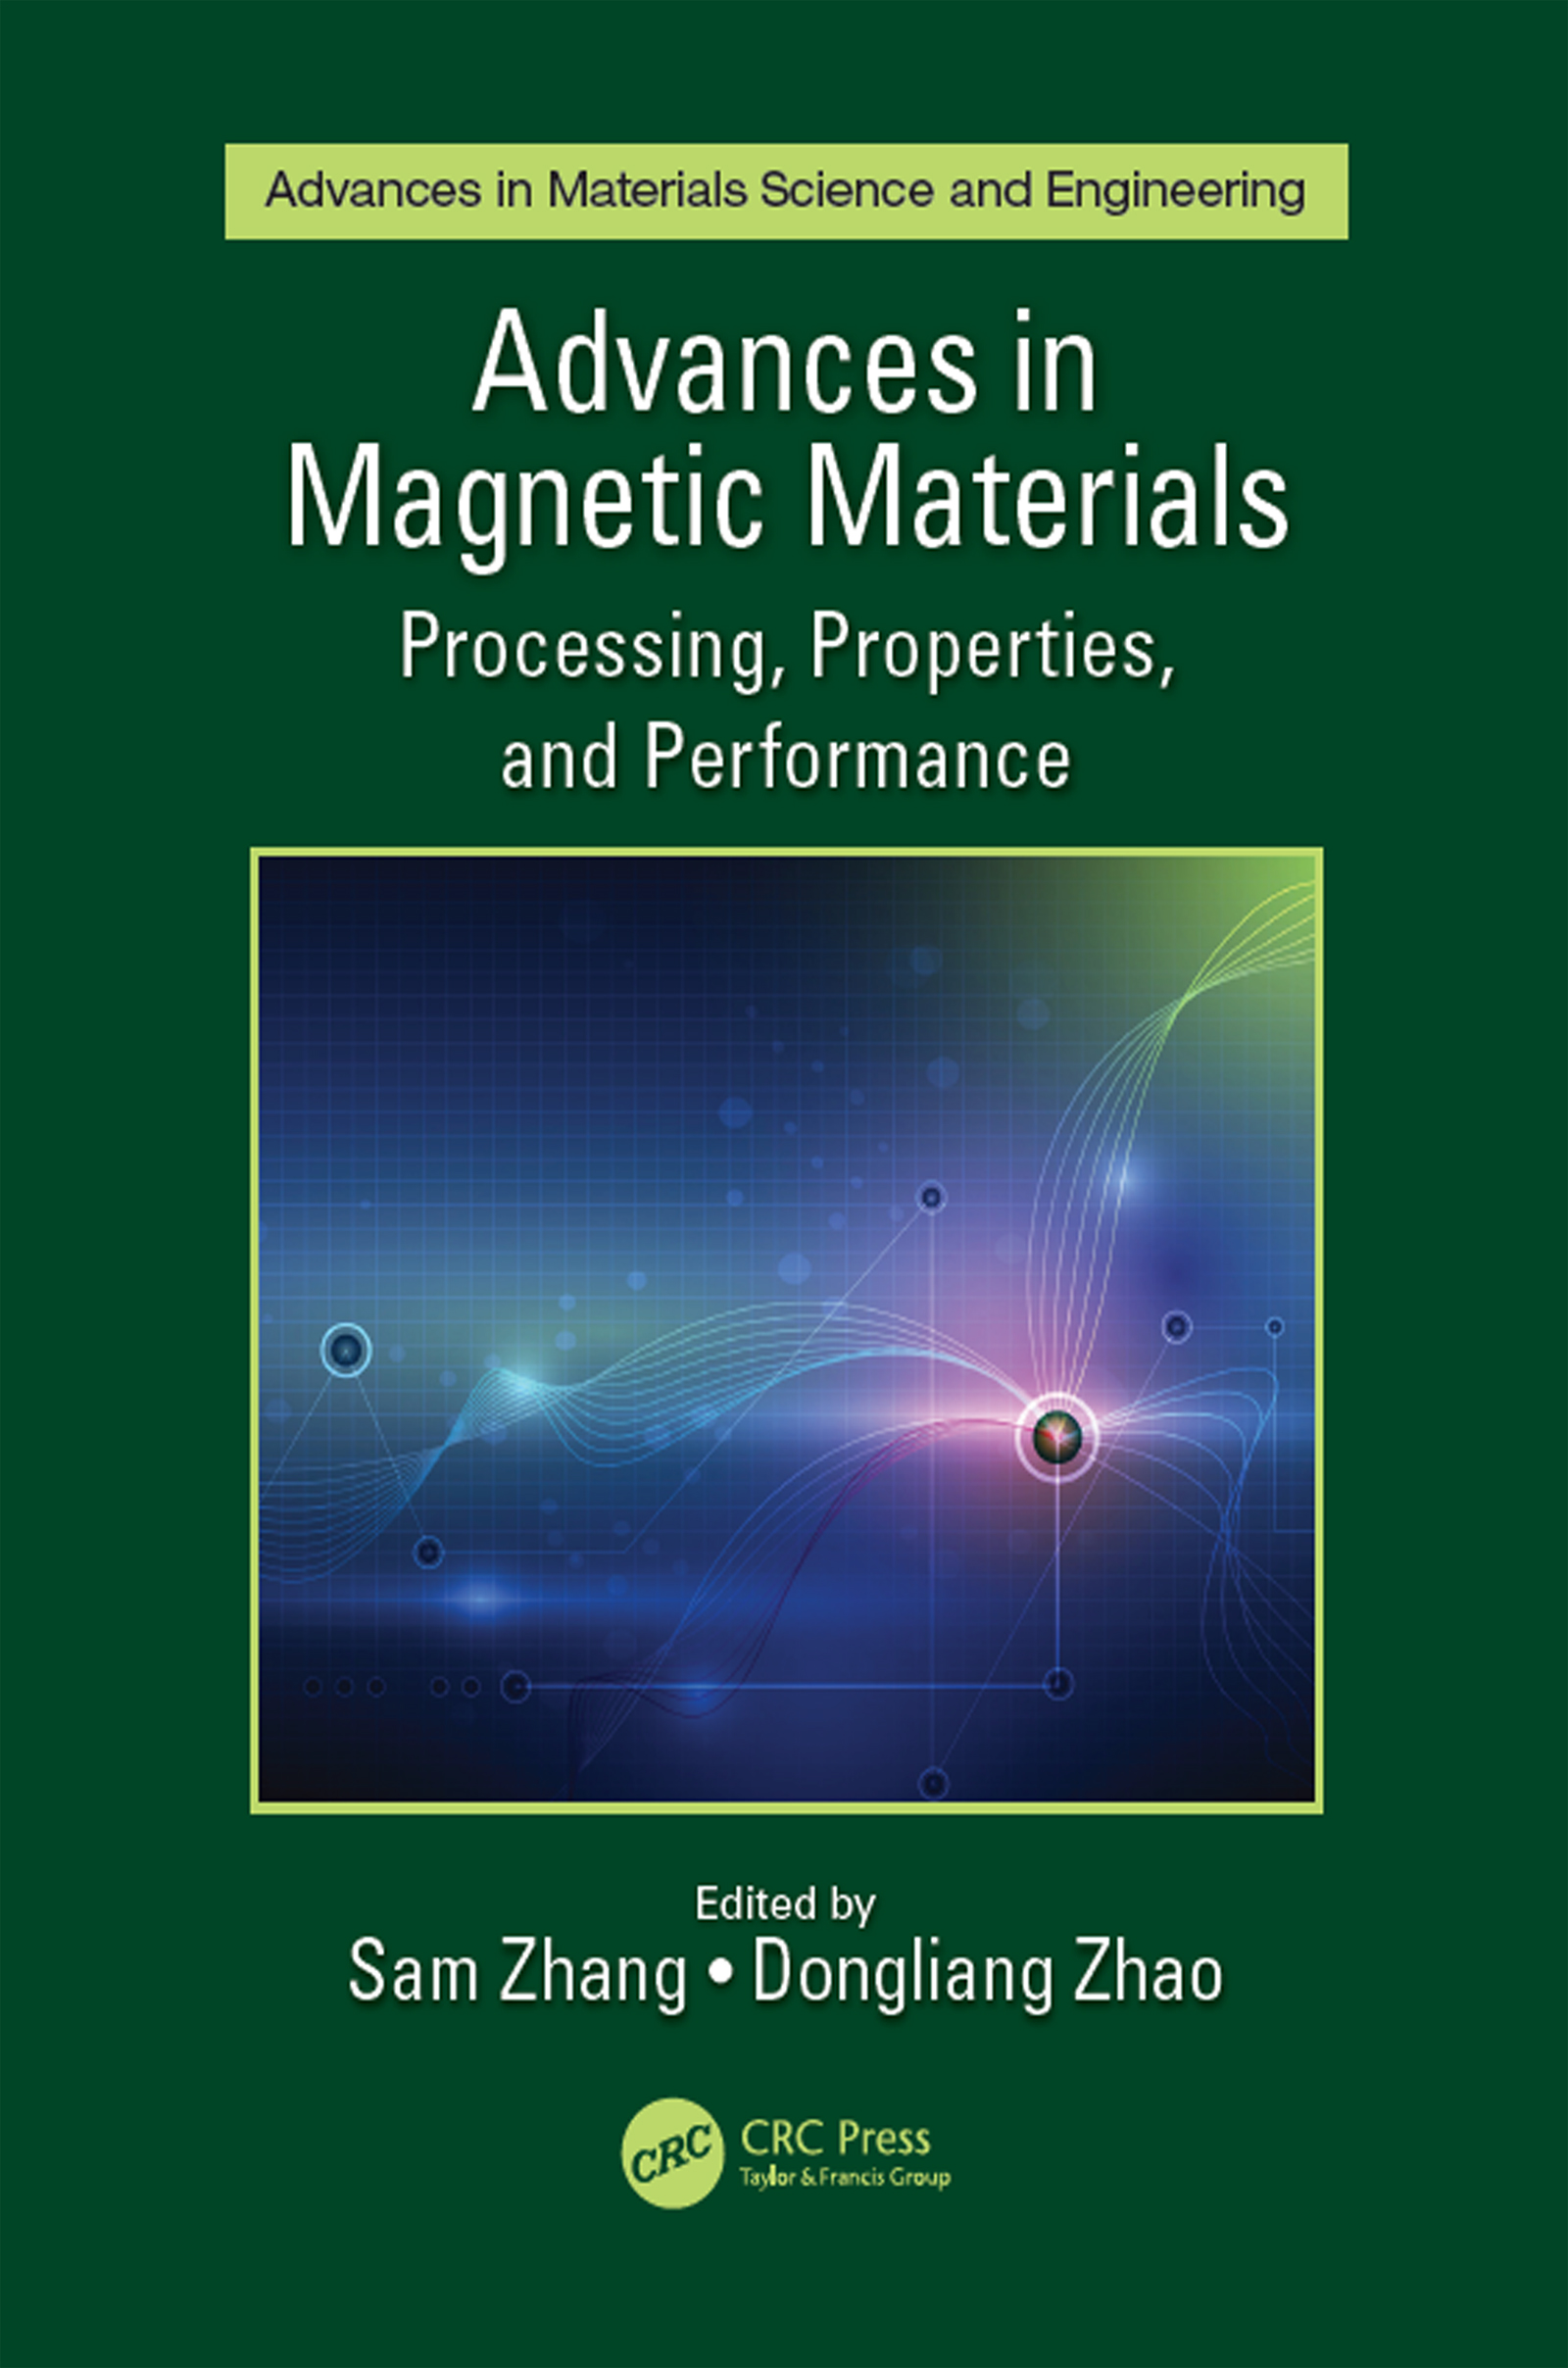 Advances in Magnetic Materials: Processing, Properties, and Performance book cover